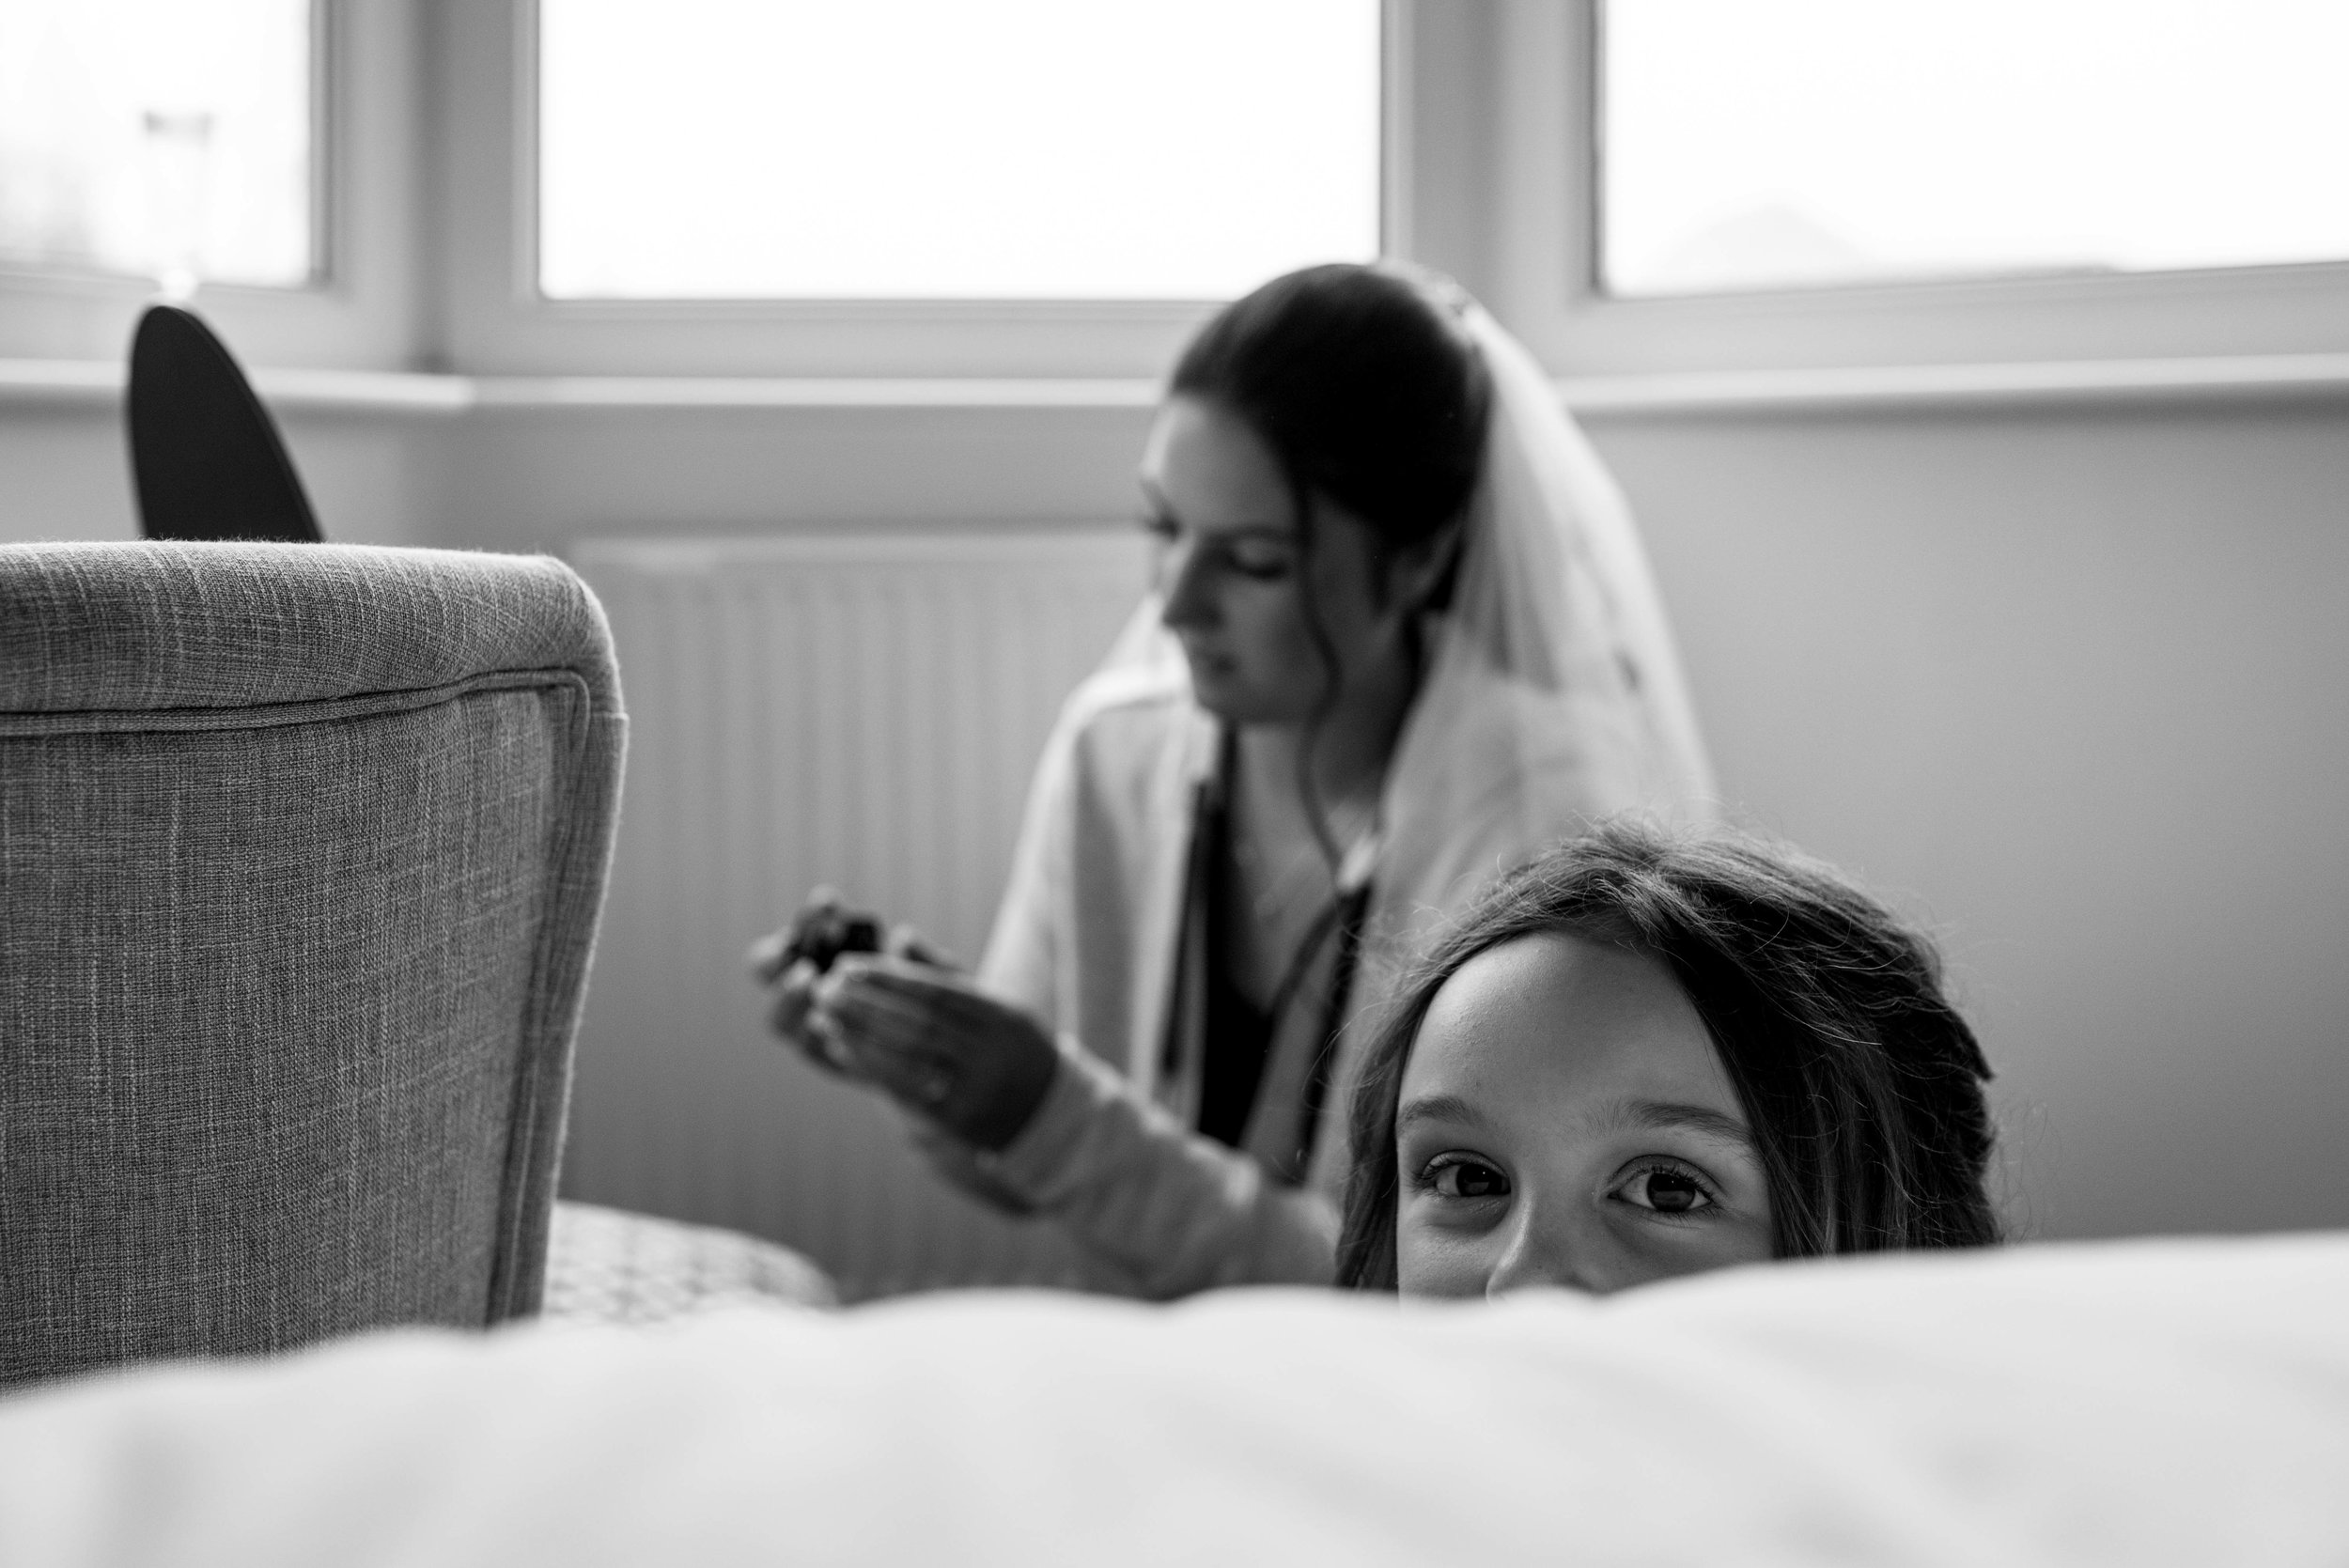 Flower girl pops up from behind the bed while the bride is doing her makeup